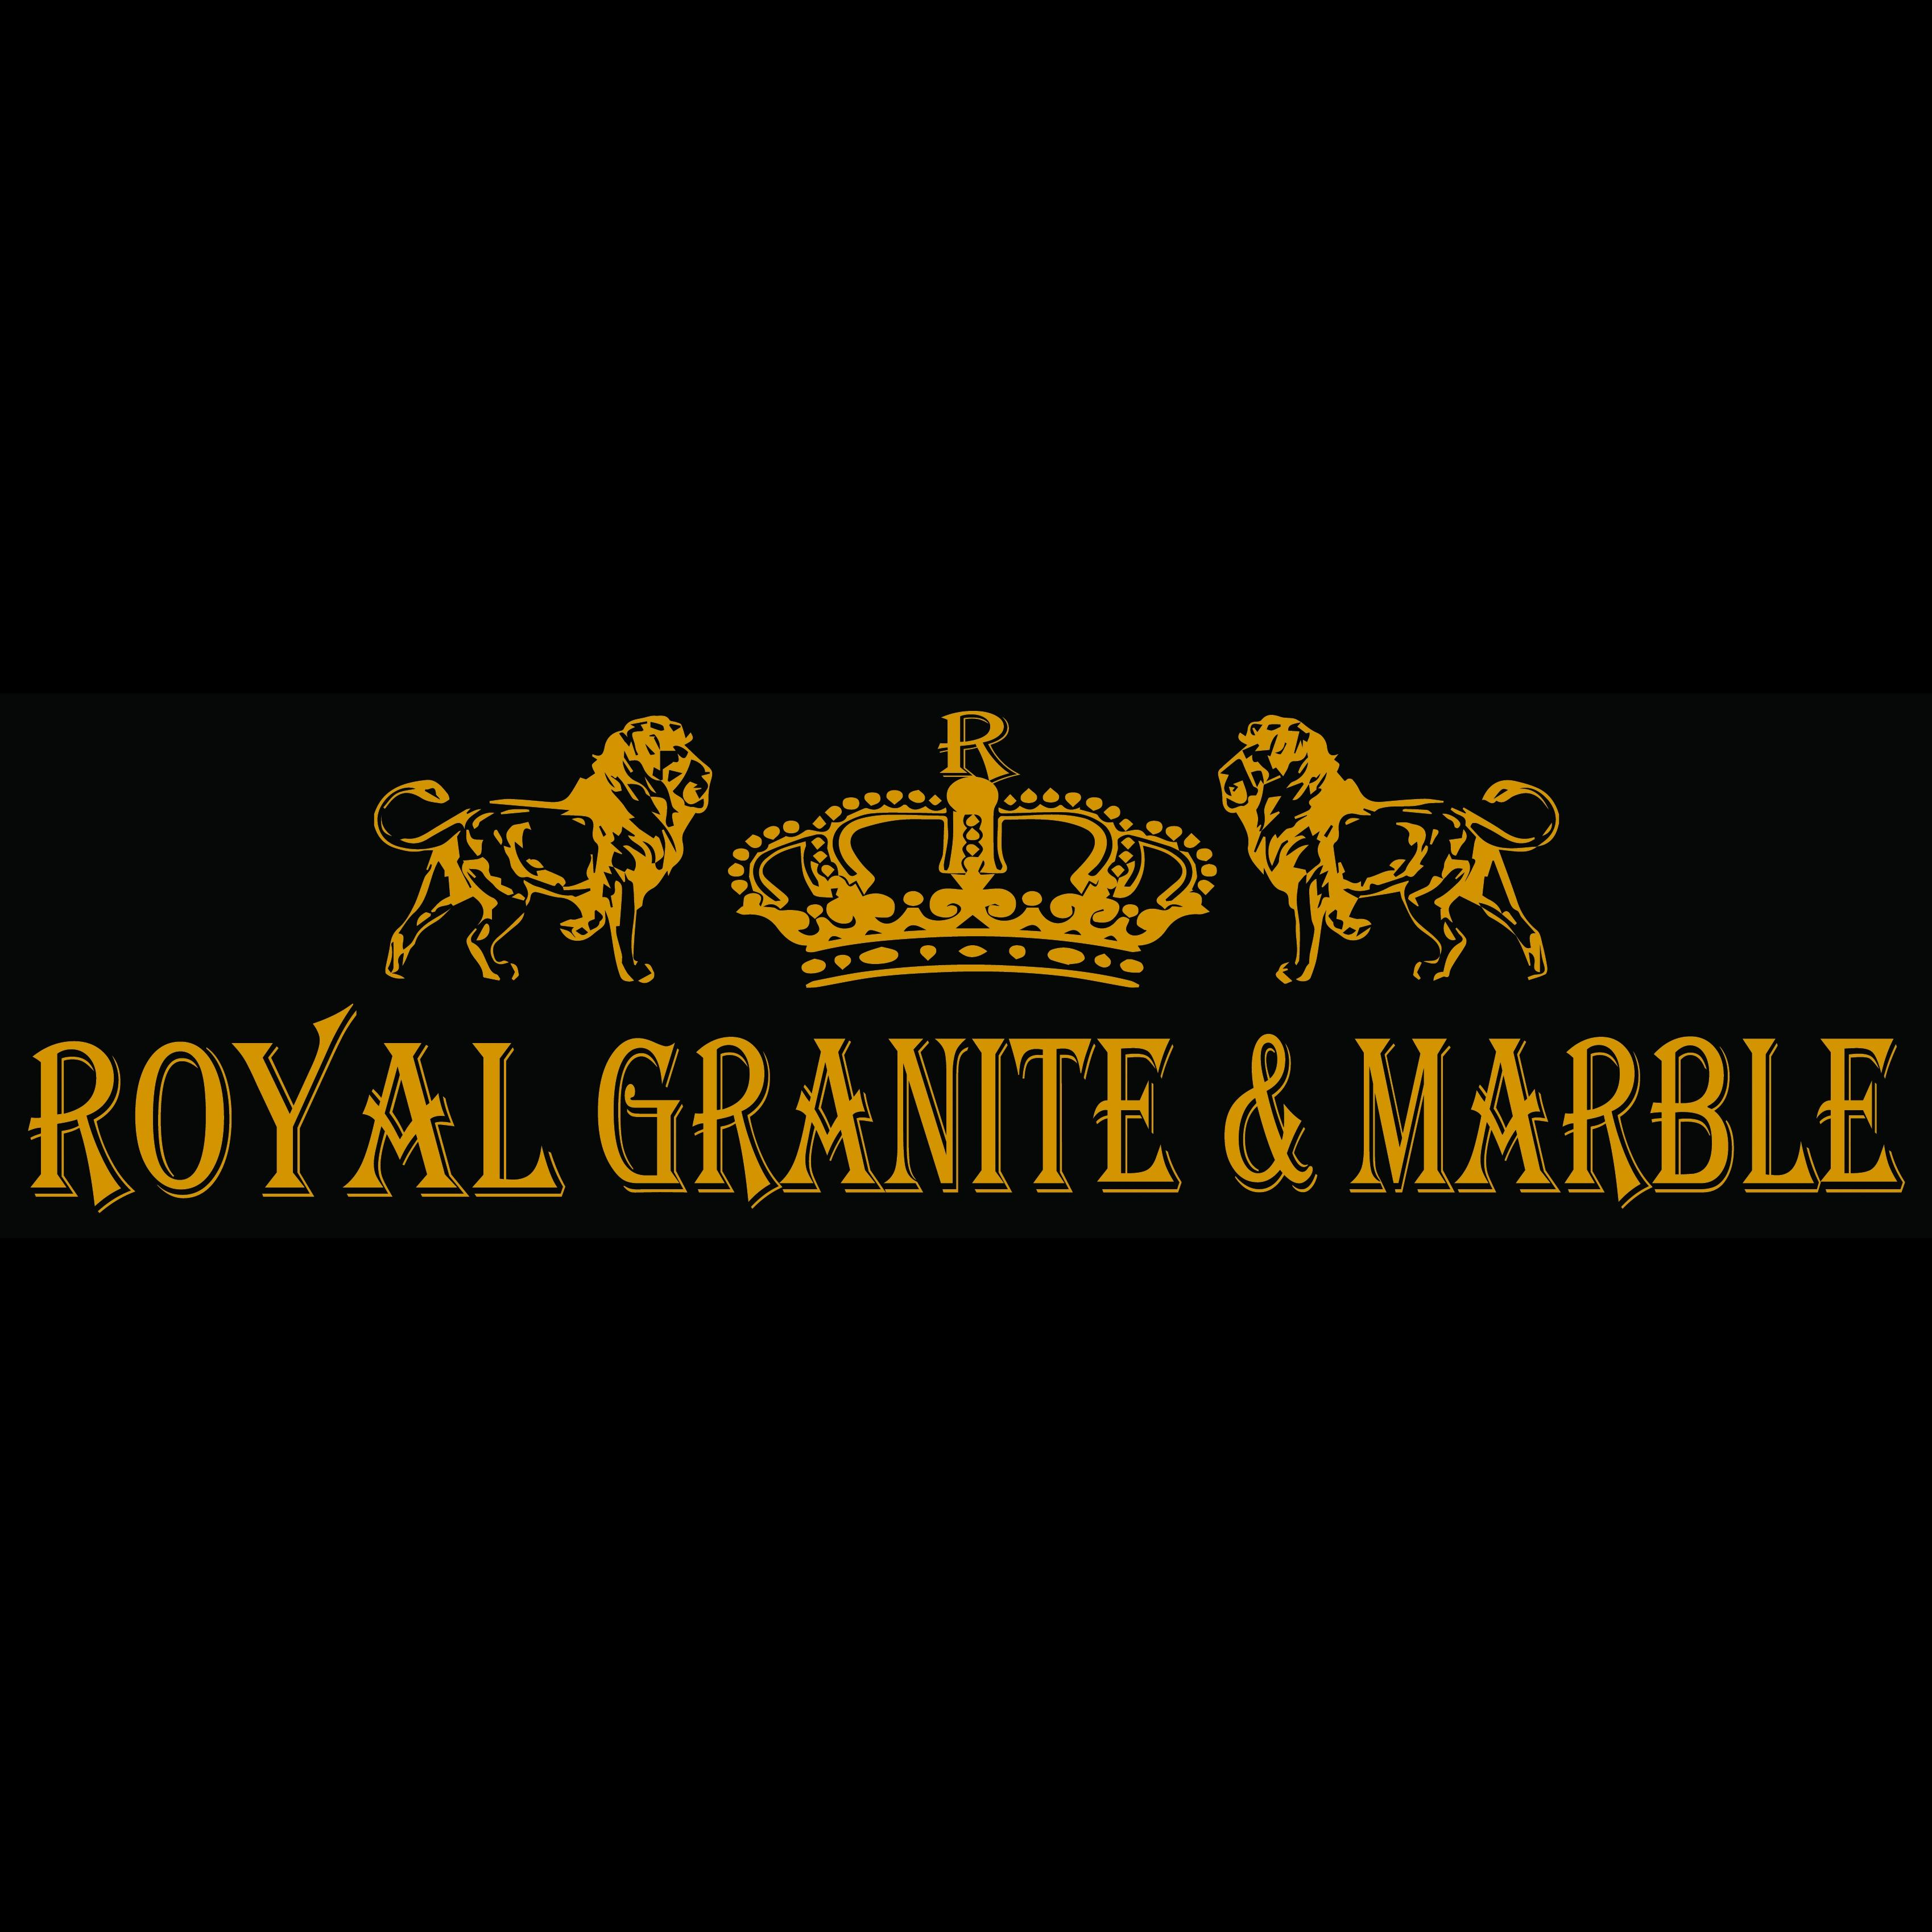 Royal Granite & Marble